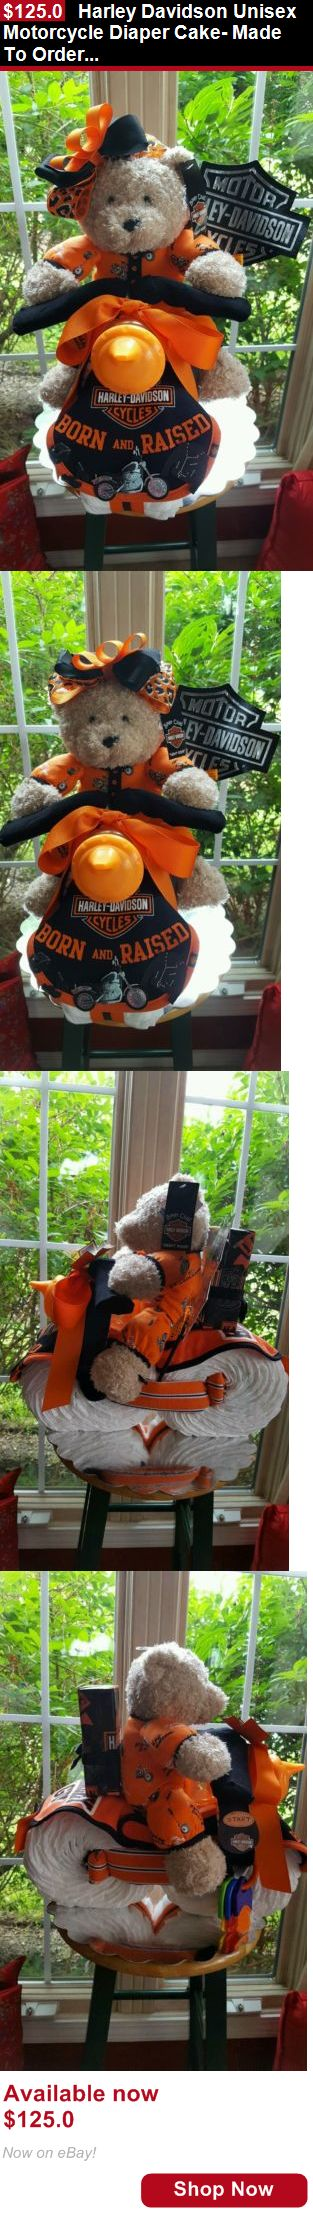 Baby Diaper Cakes: Harley Davidson Unisex Motorcycle Diaper Cake- Made To Order For A Girl Or Boy BUY IT NOW ONLY: $125.0